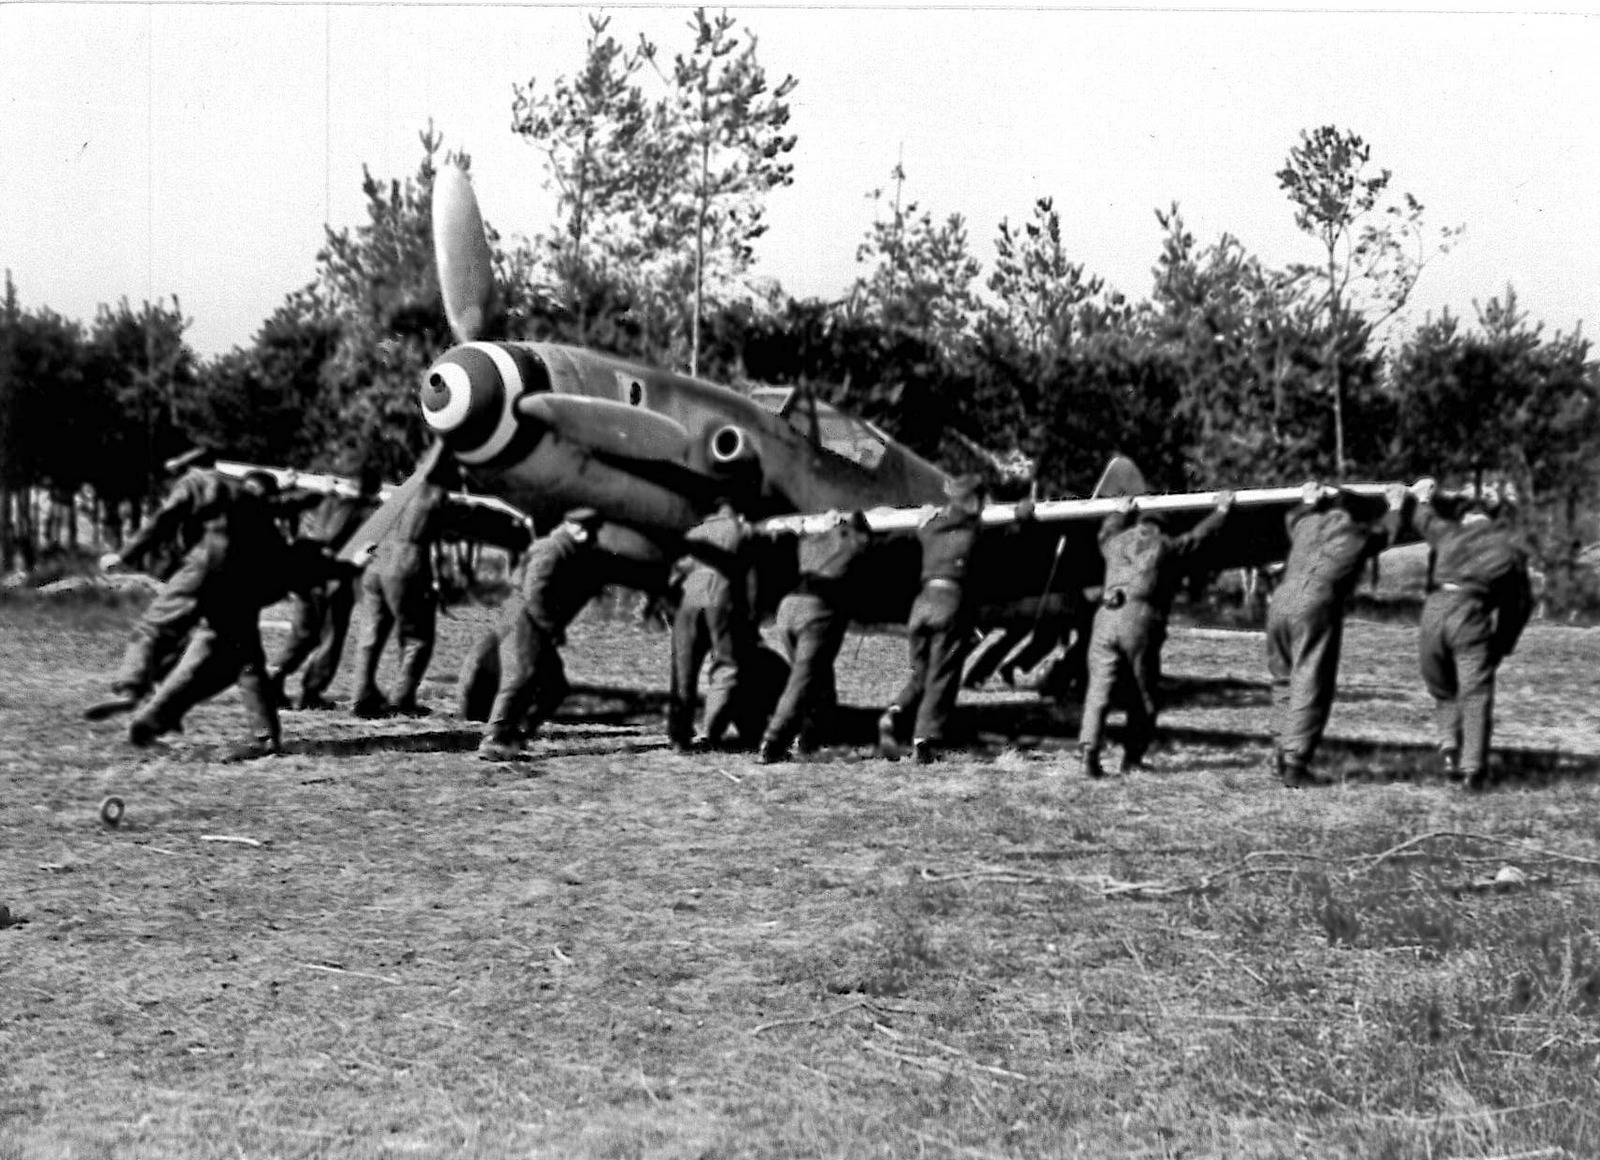 Visconti's Bf-109G being pushed in the sheltered area of Lonate Pozzolo airfield. ( Luigino Caliaro Archive)